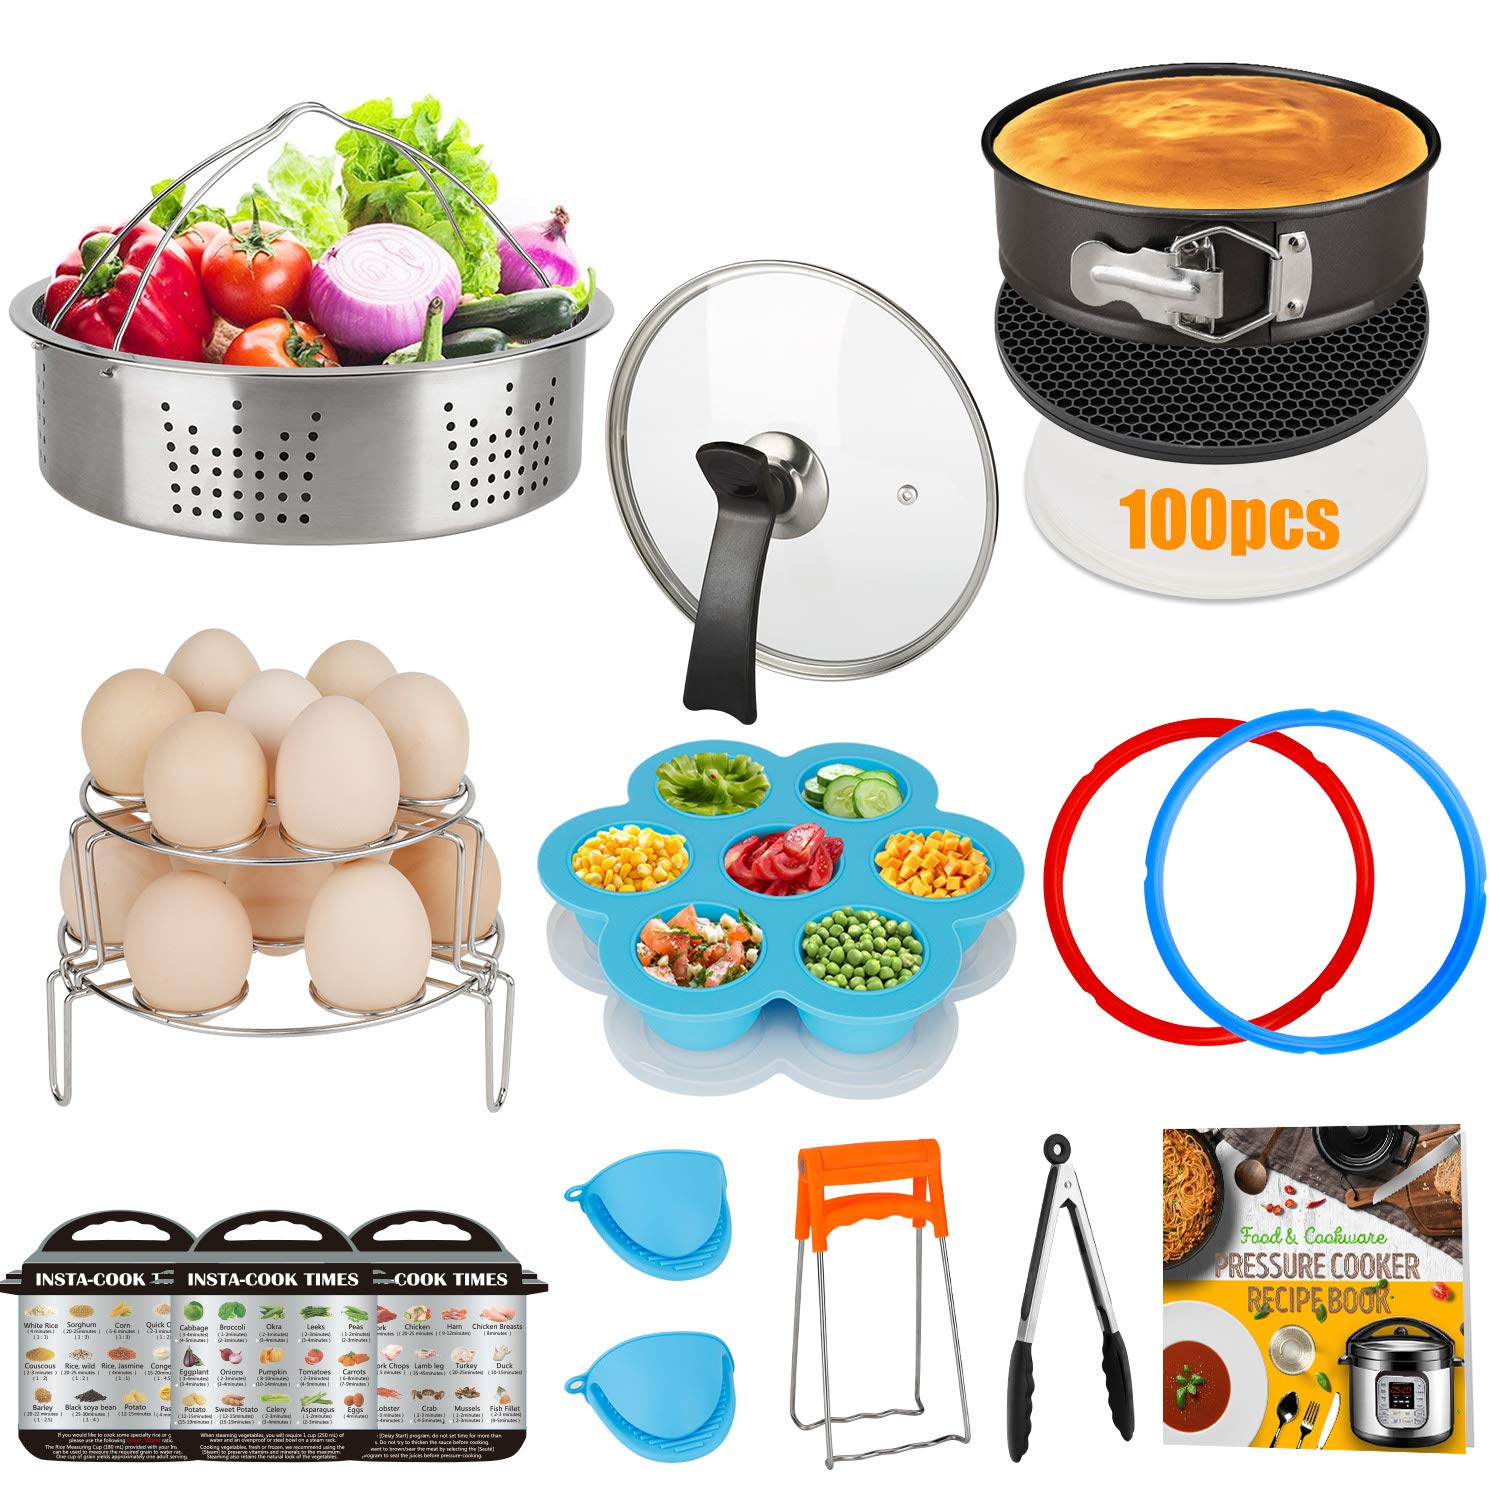 Accessories Set Compatible with 8 Quart Instant Pot Only with Sealing Rings, Tempered Glass Lid, and Steamer Basket. by Acnusik (Image #1)